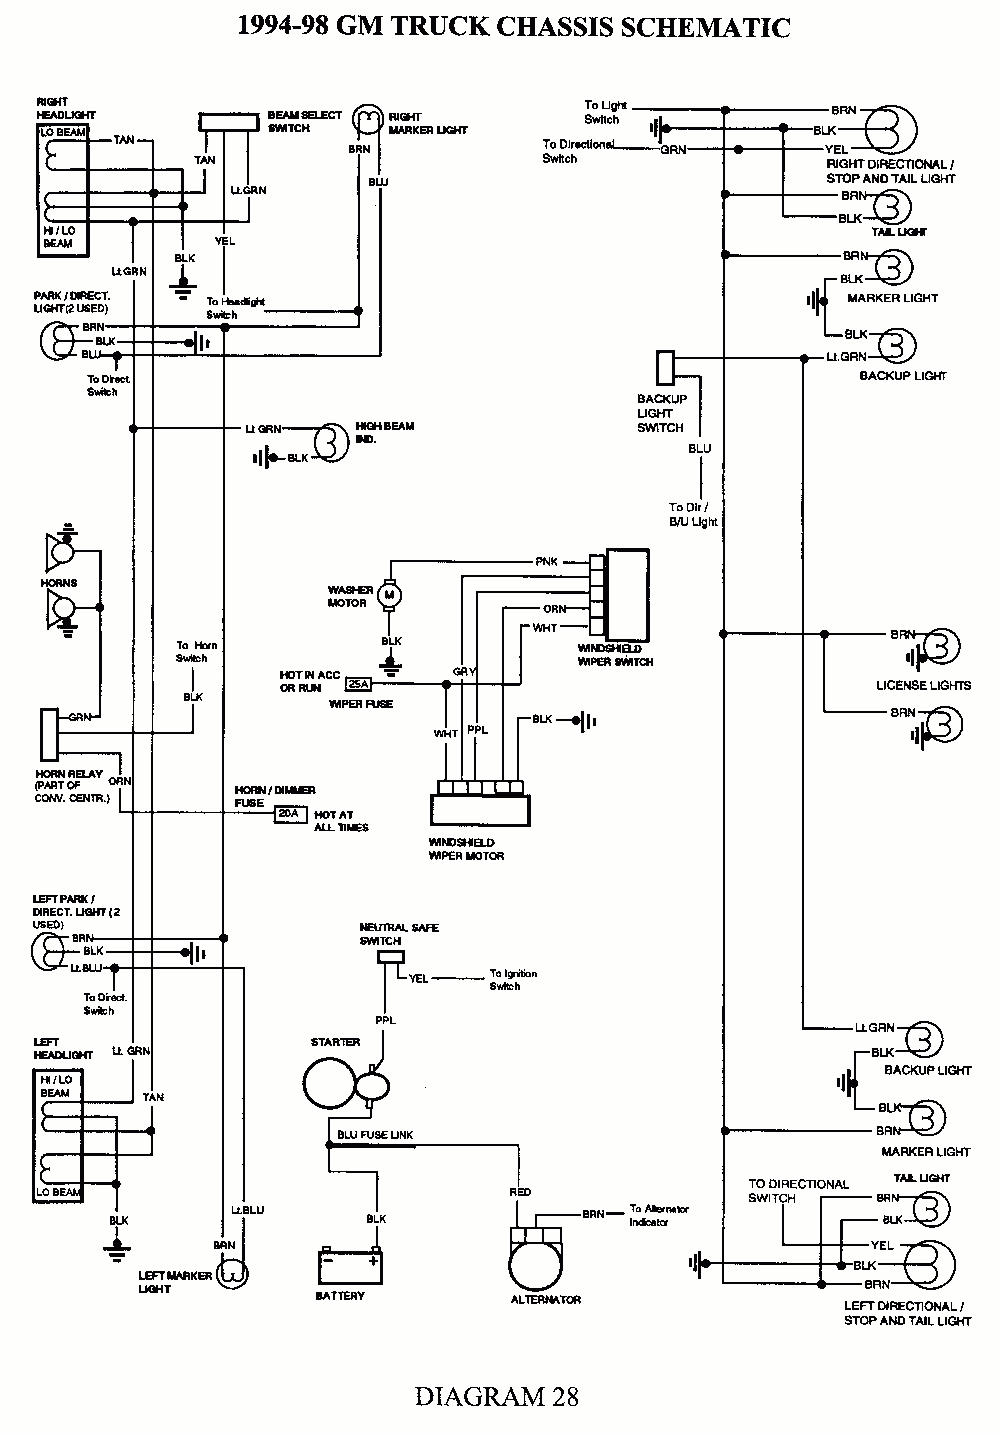 wiring diagram further 1986 gmc s15 jimmy on tail light wiring cheve wiring tail light 1981